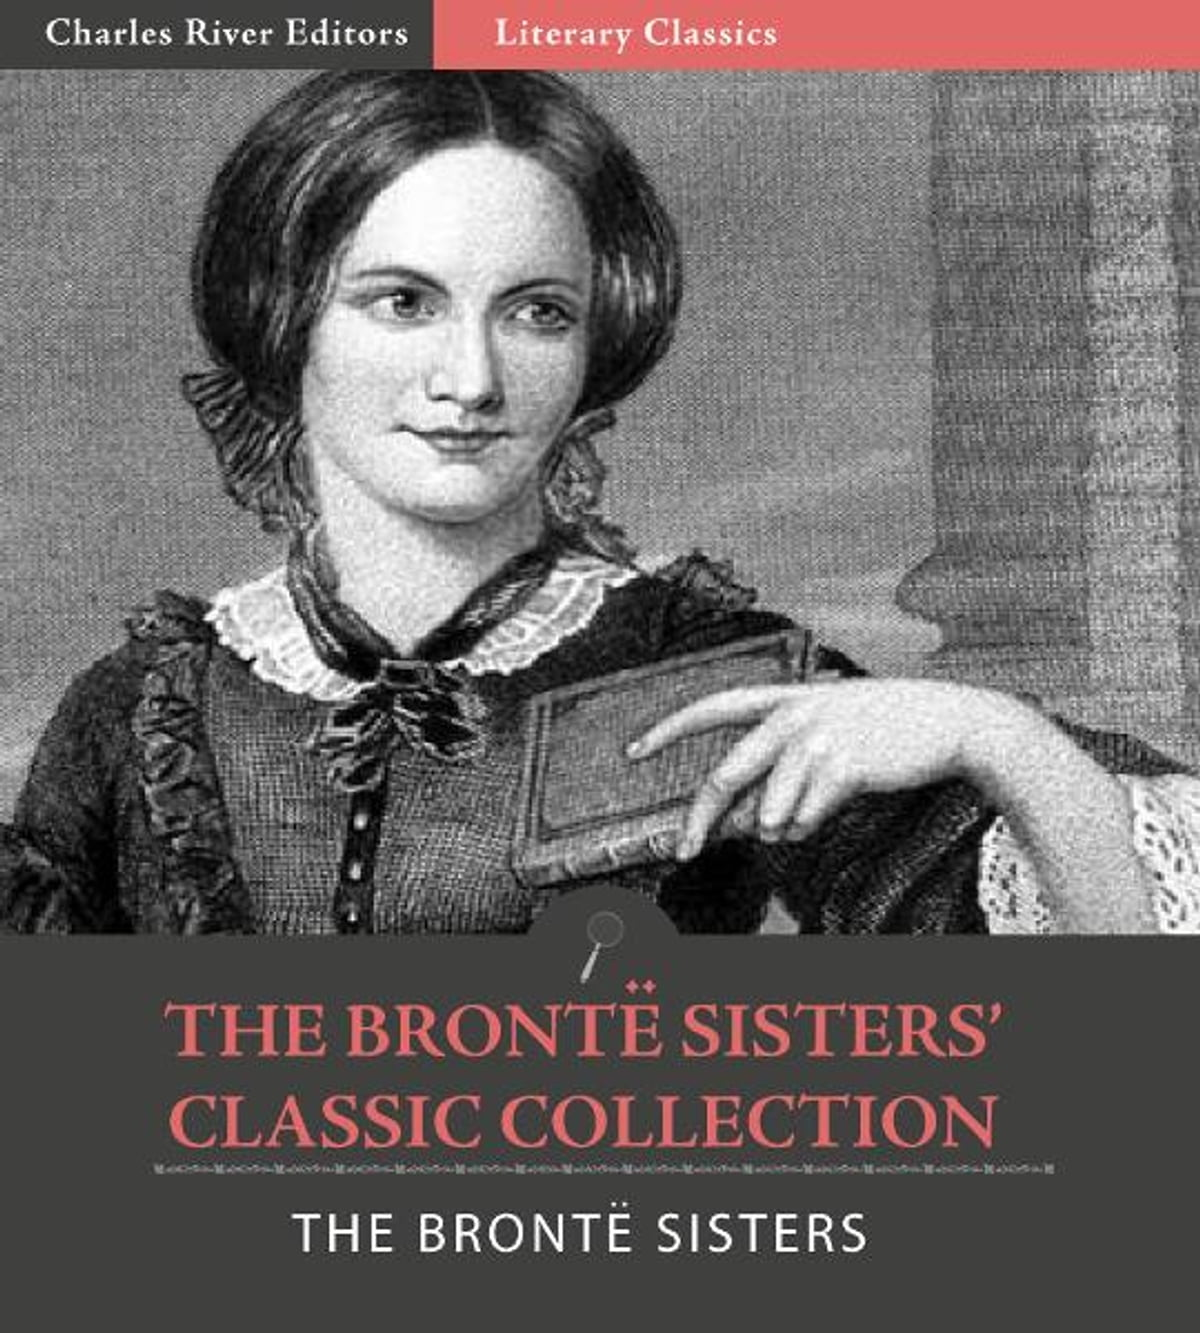 Image result for the bronte sister classic collection